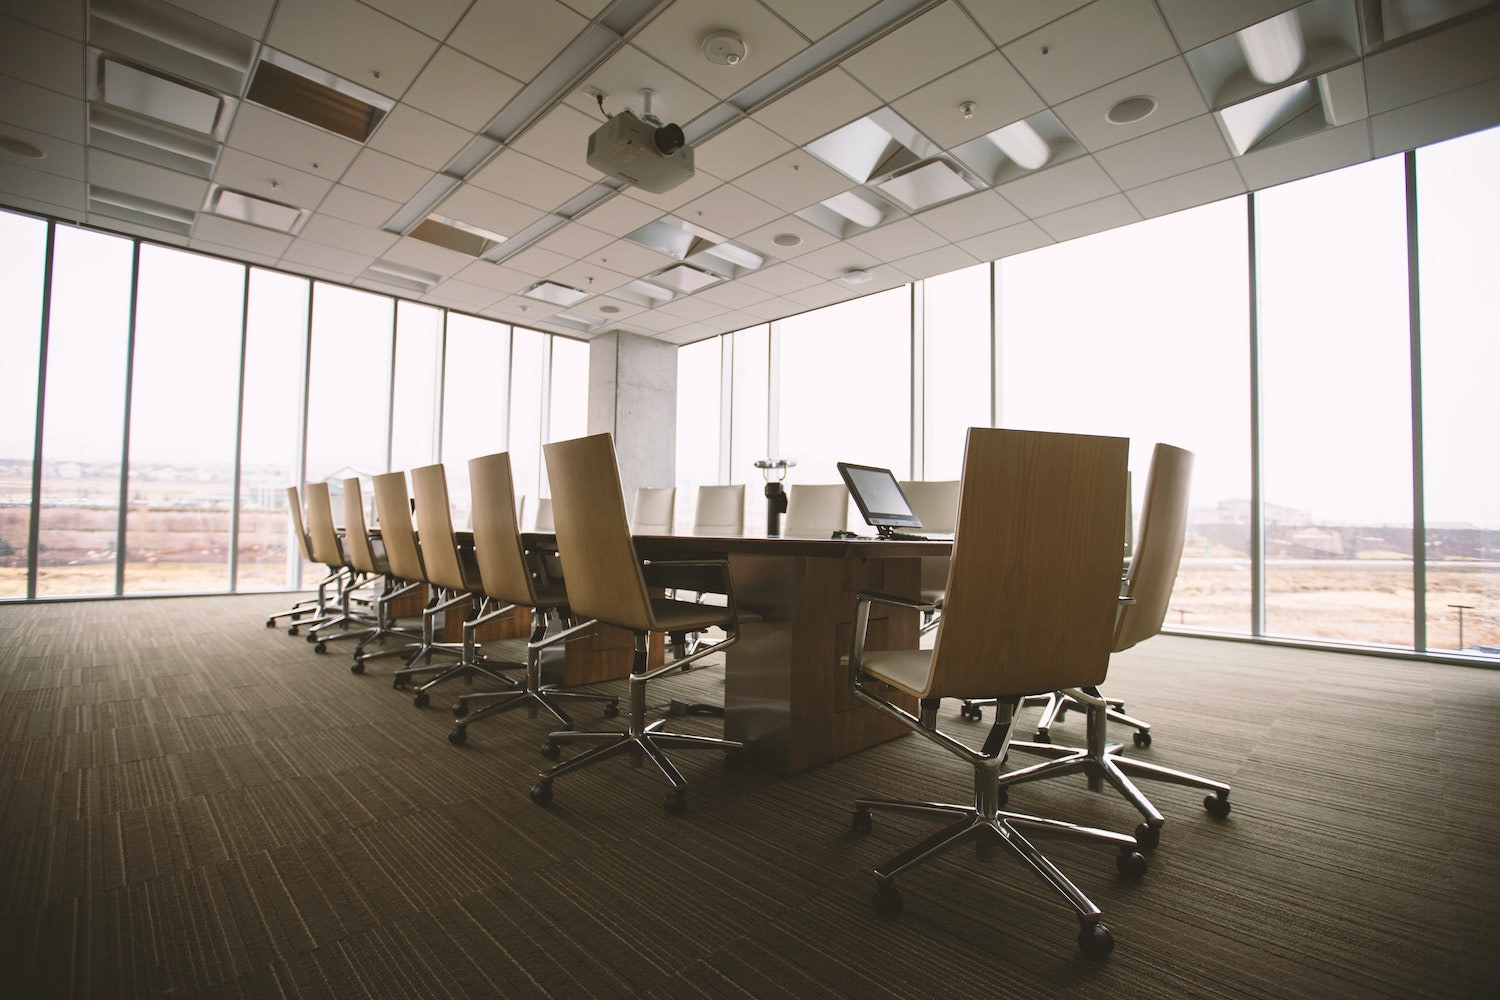 An image of the boardroom in an article about how companies are governed.